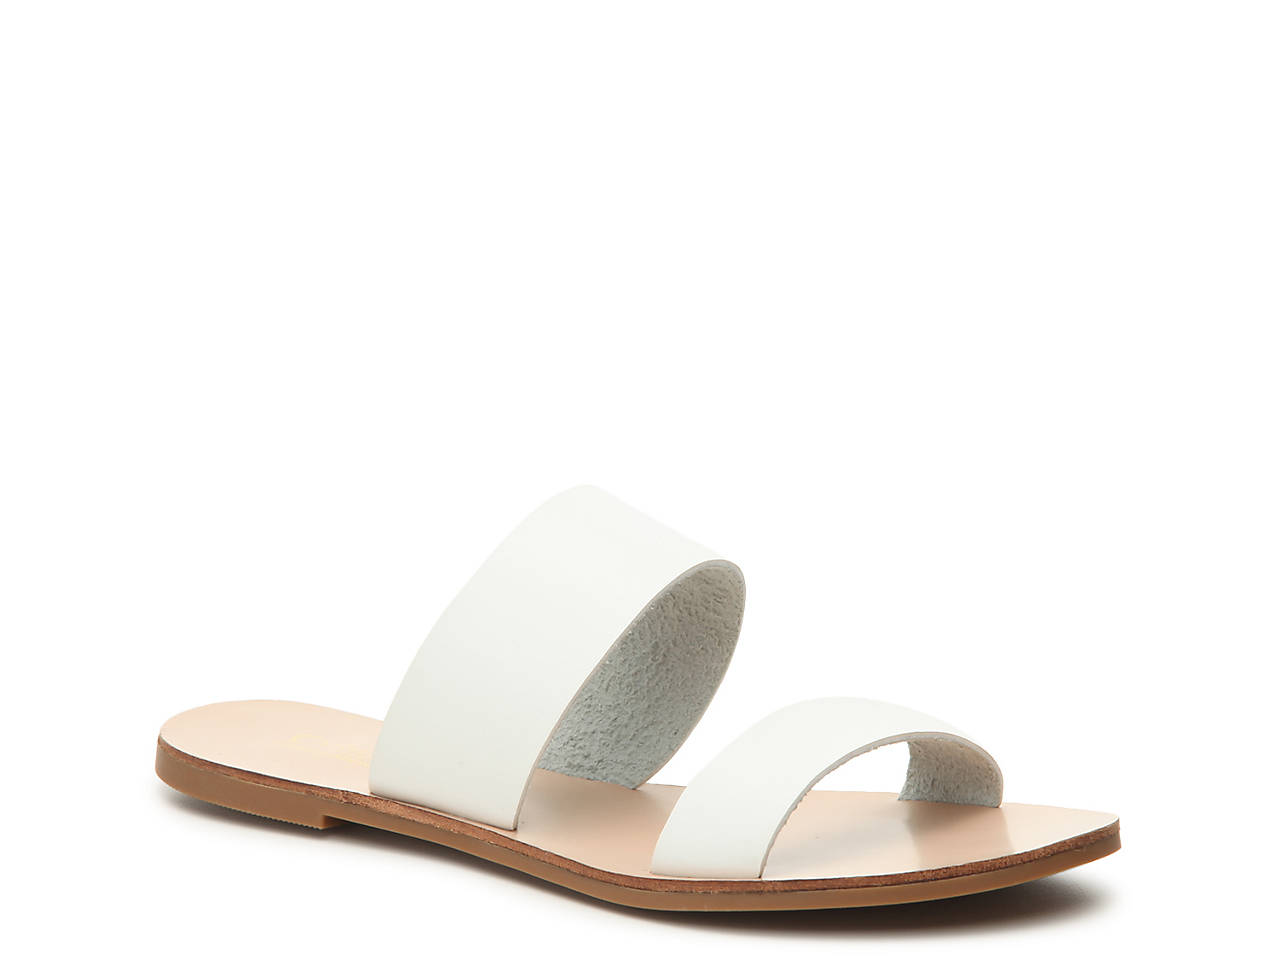 86a02998f Catherine Catherine Malandrino Mandie Sandal Women's Shoes | DSW